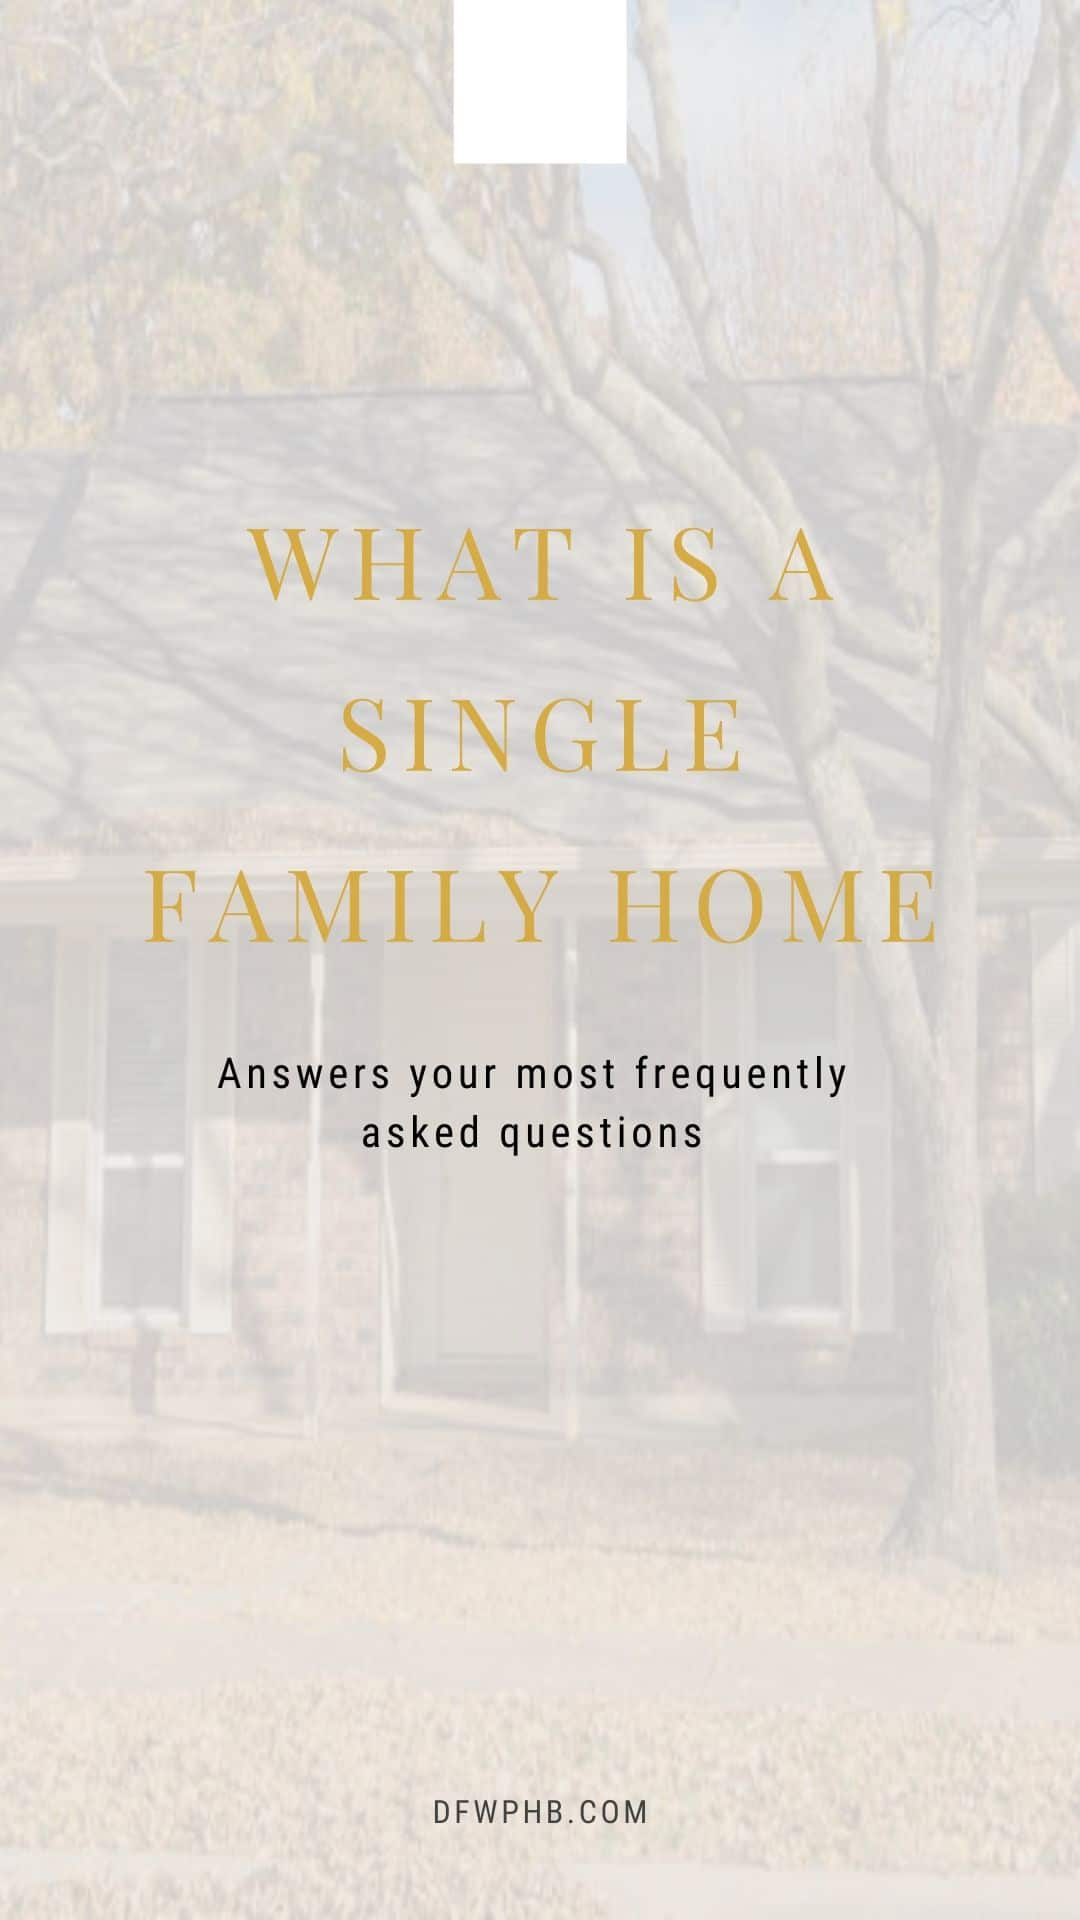 Image of a guide that discusses what is a single family home